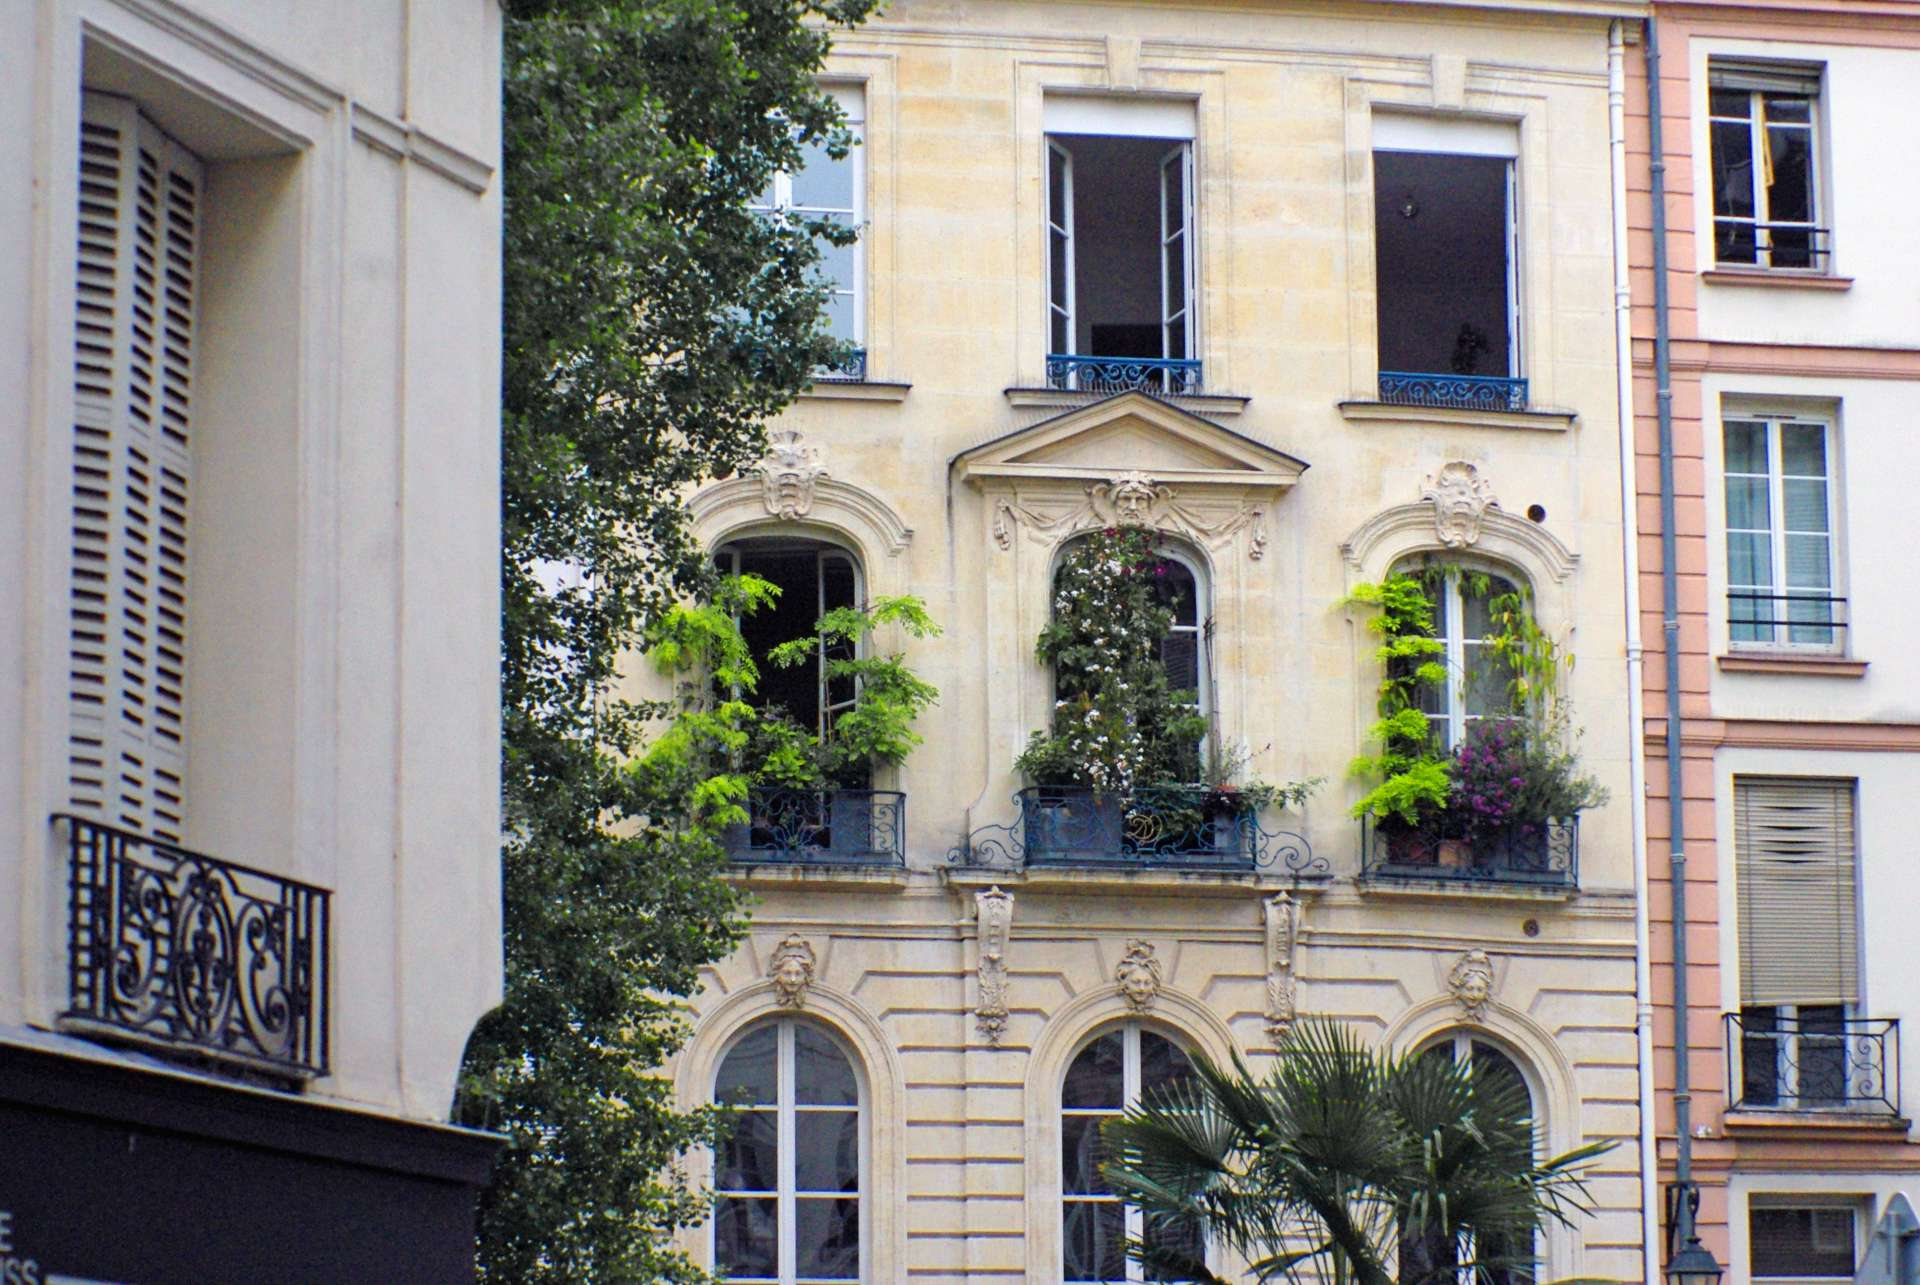 Townhouse in Saint-Germain des Prés copyright French Moments